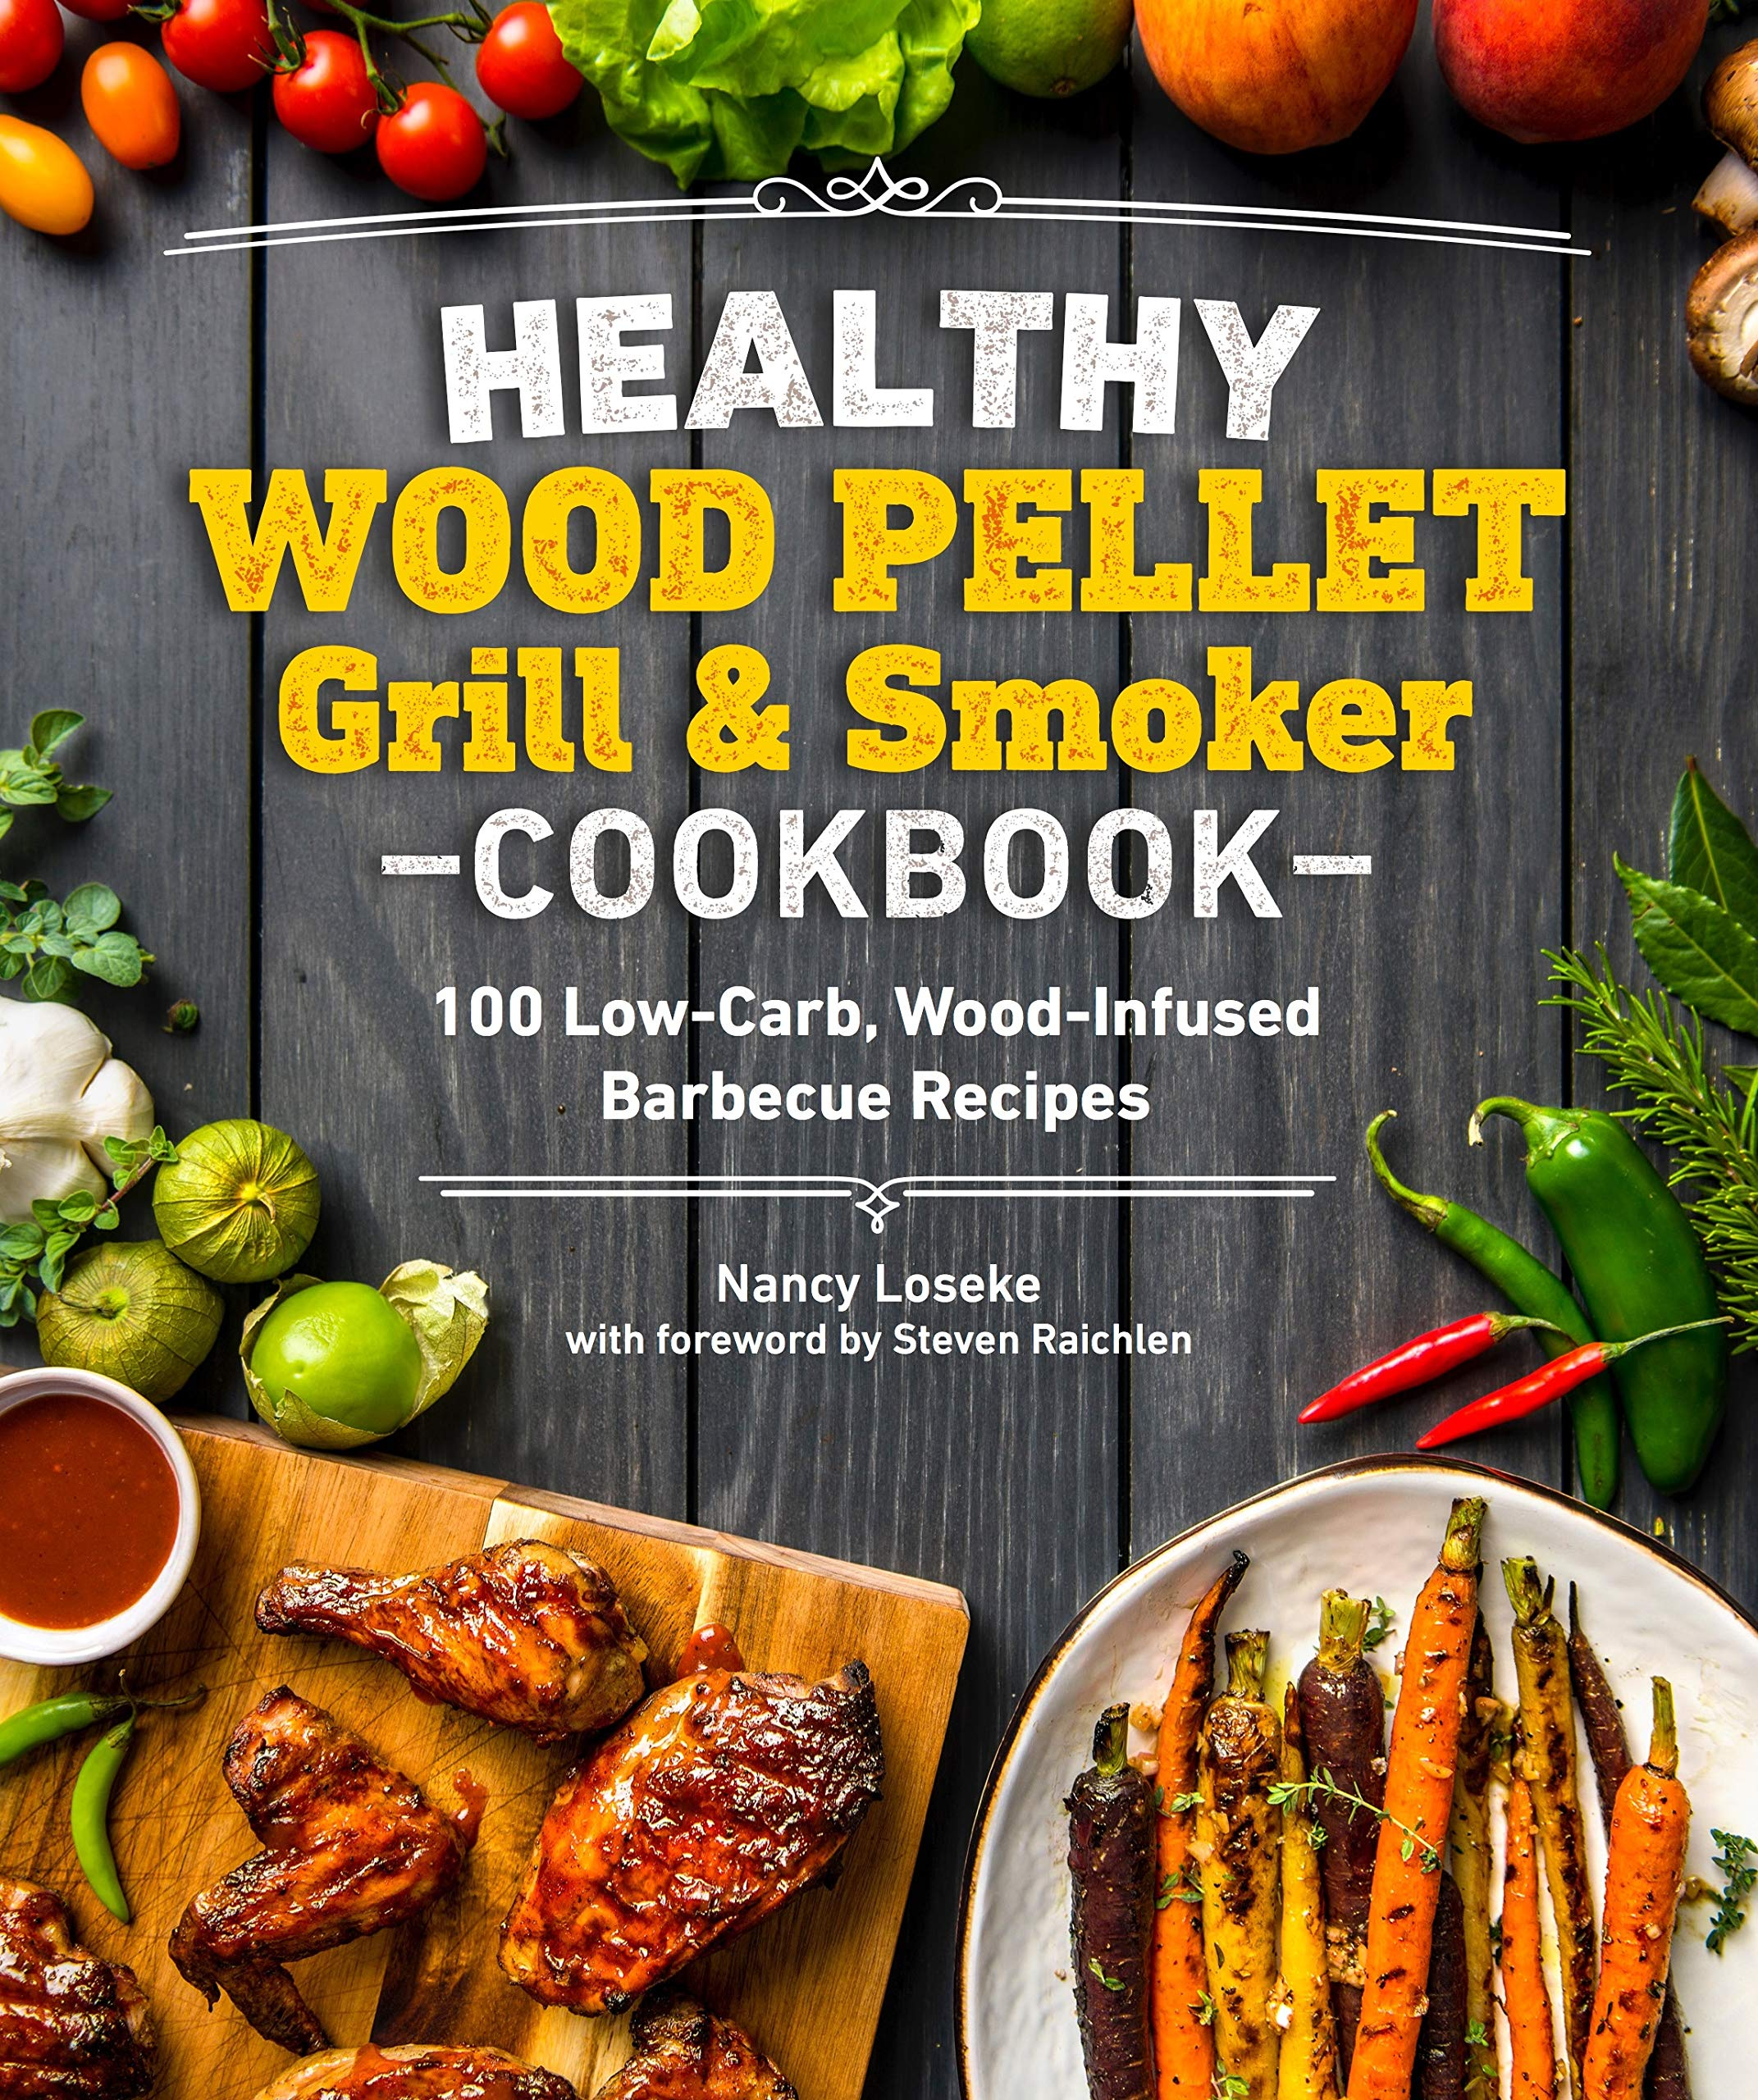 Healthy Wood Pellet Grill & Smoker Cookbook: 100 Low-Carb Wood-Infused Barbecue Recipes (Healthy Cookbook) 1